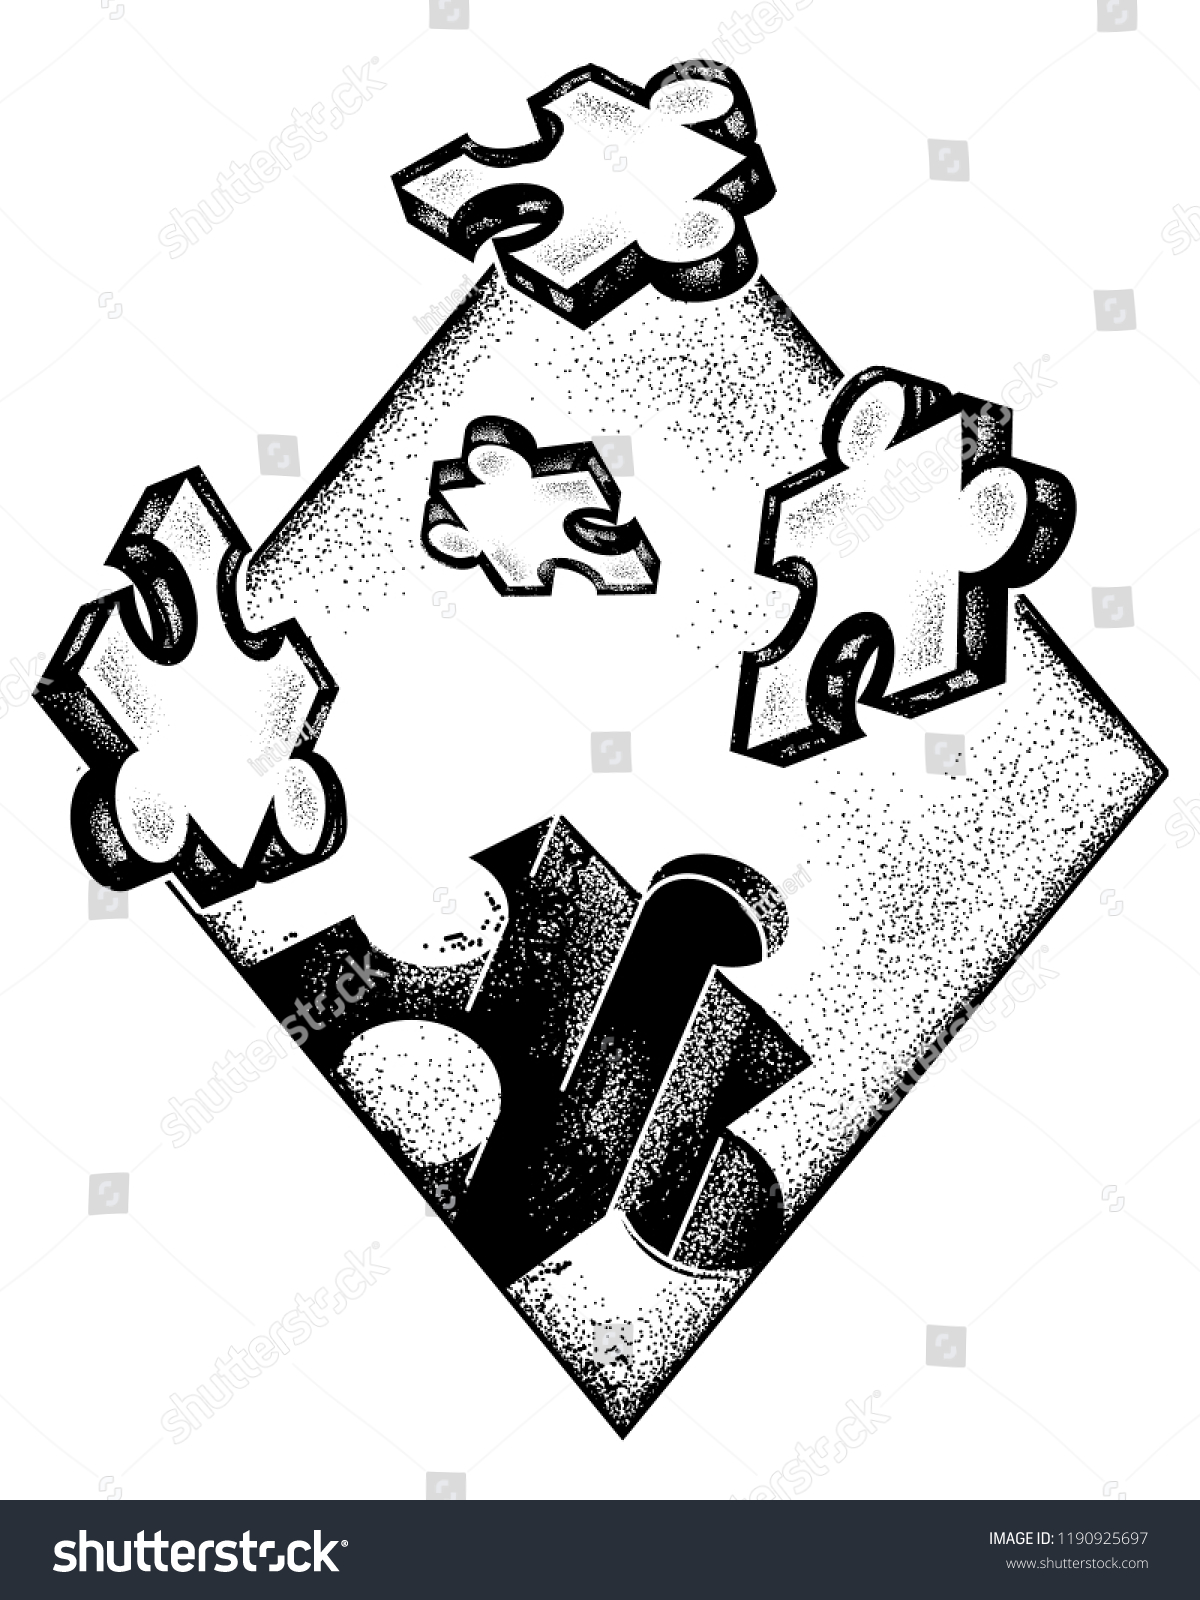 Puzzle Tattoo Art Symbol Education Business Stock Vector Royalty